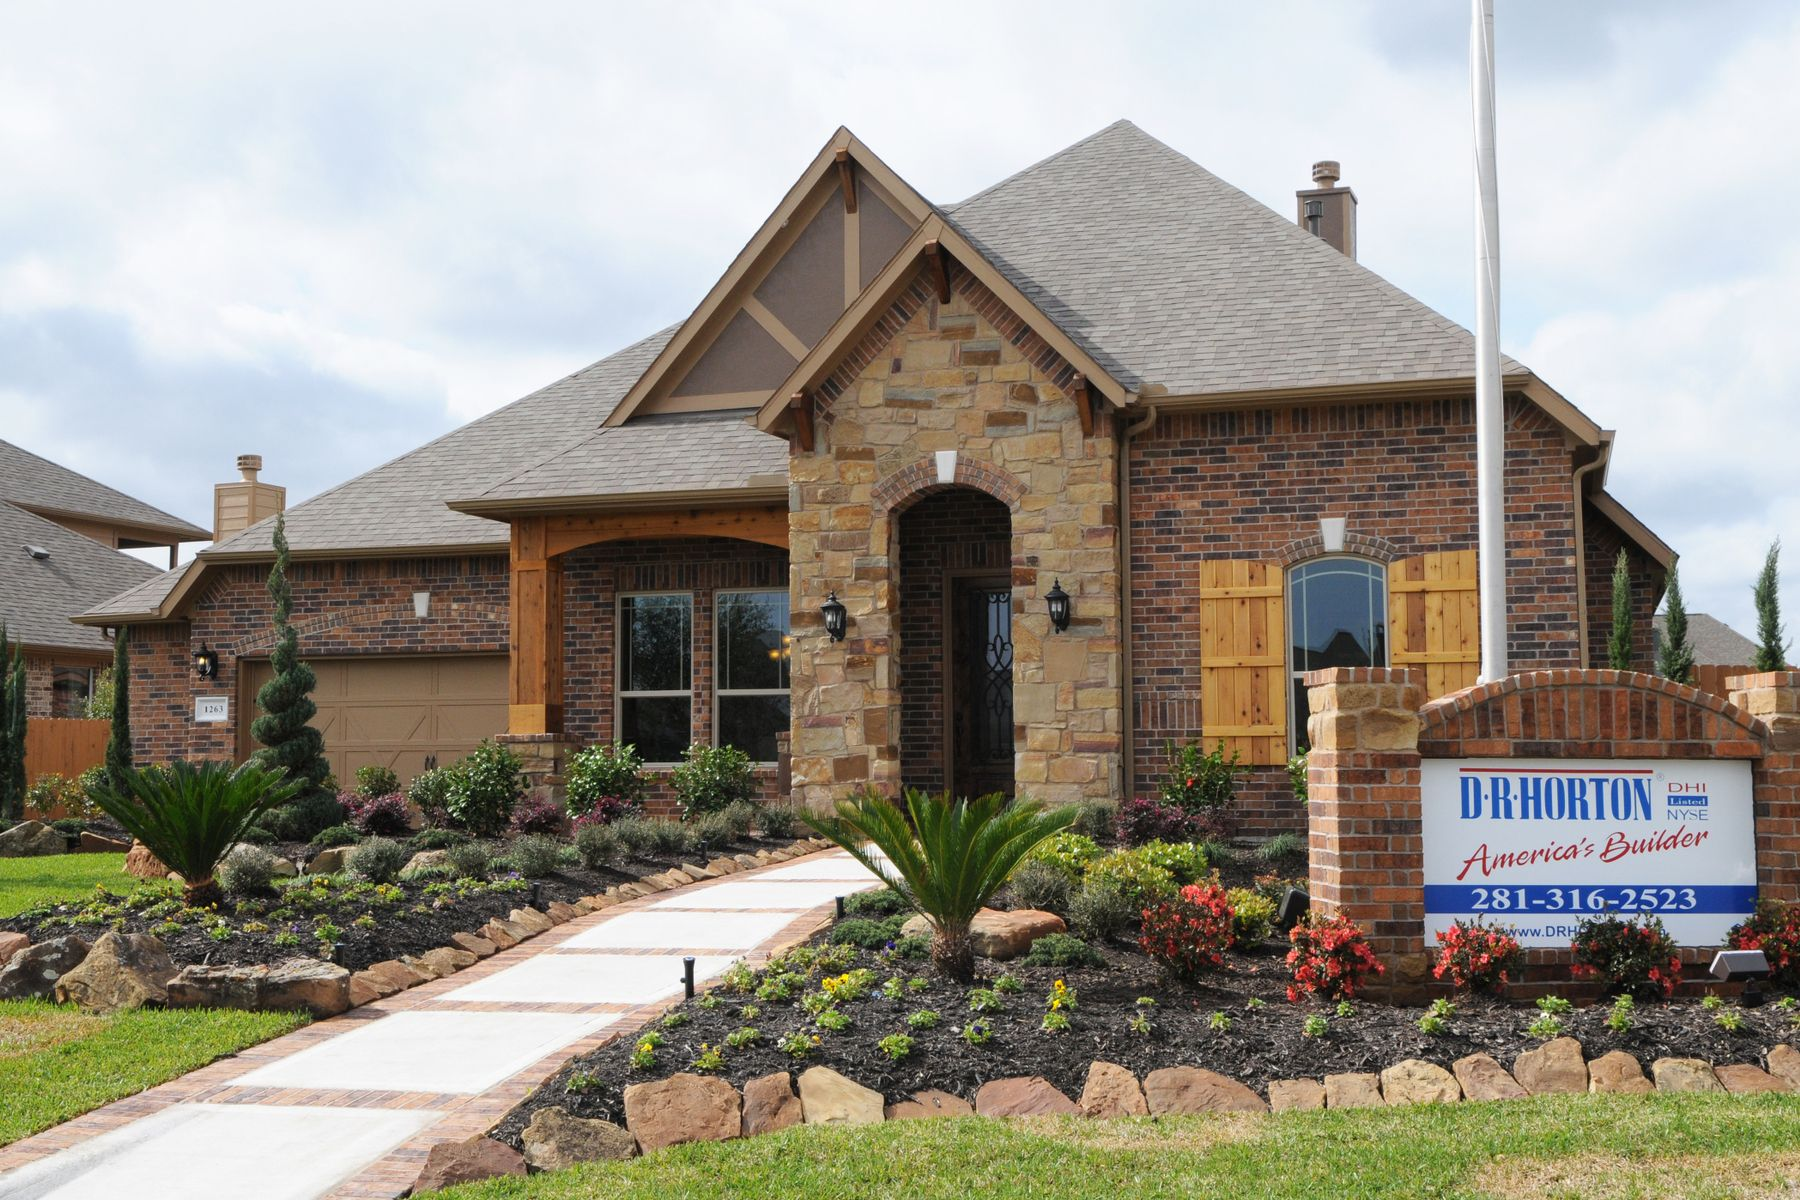 Dr horton model home in tuscan lakes the dream house for Tuscany model homes